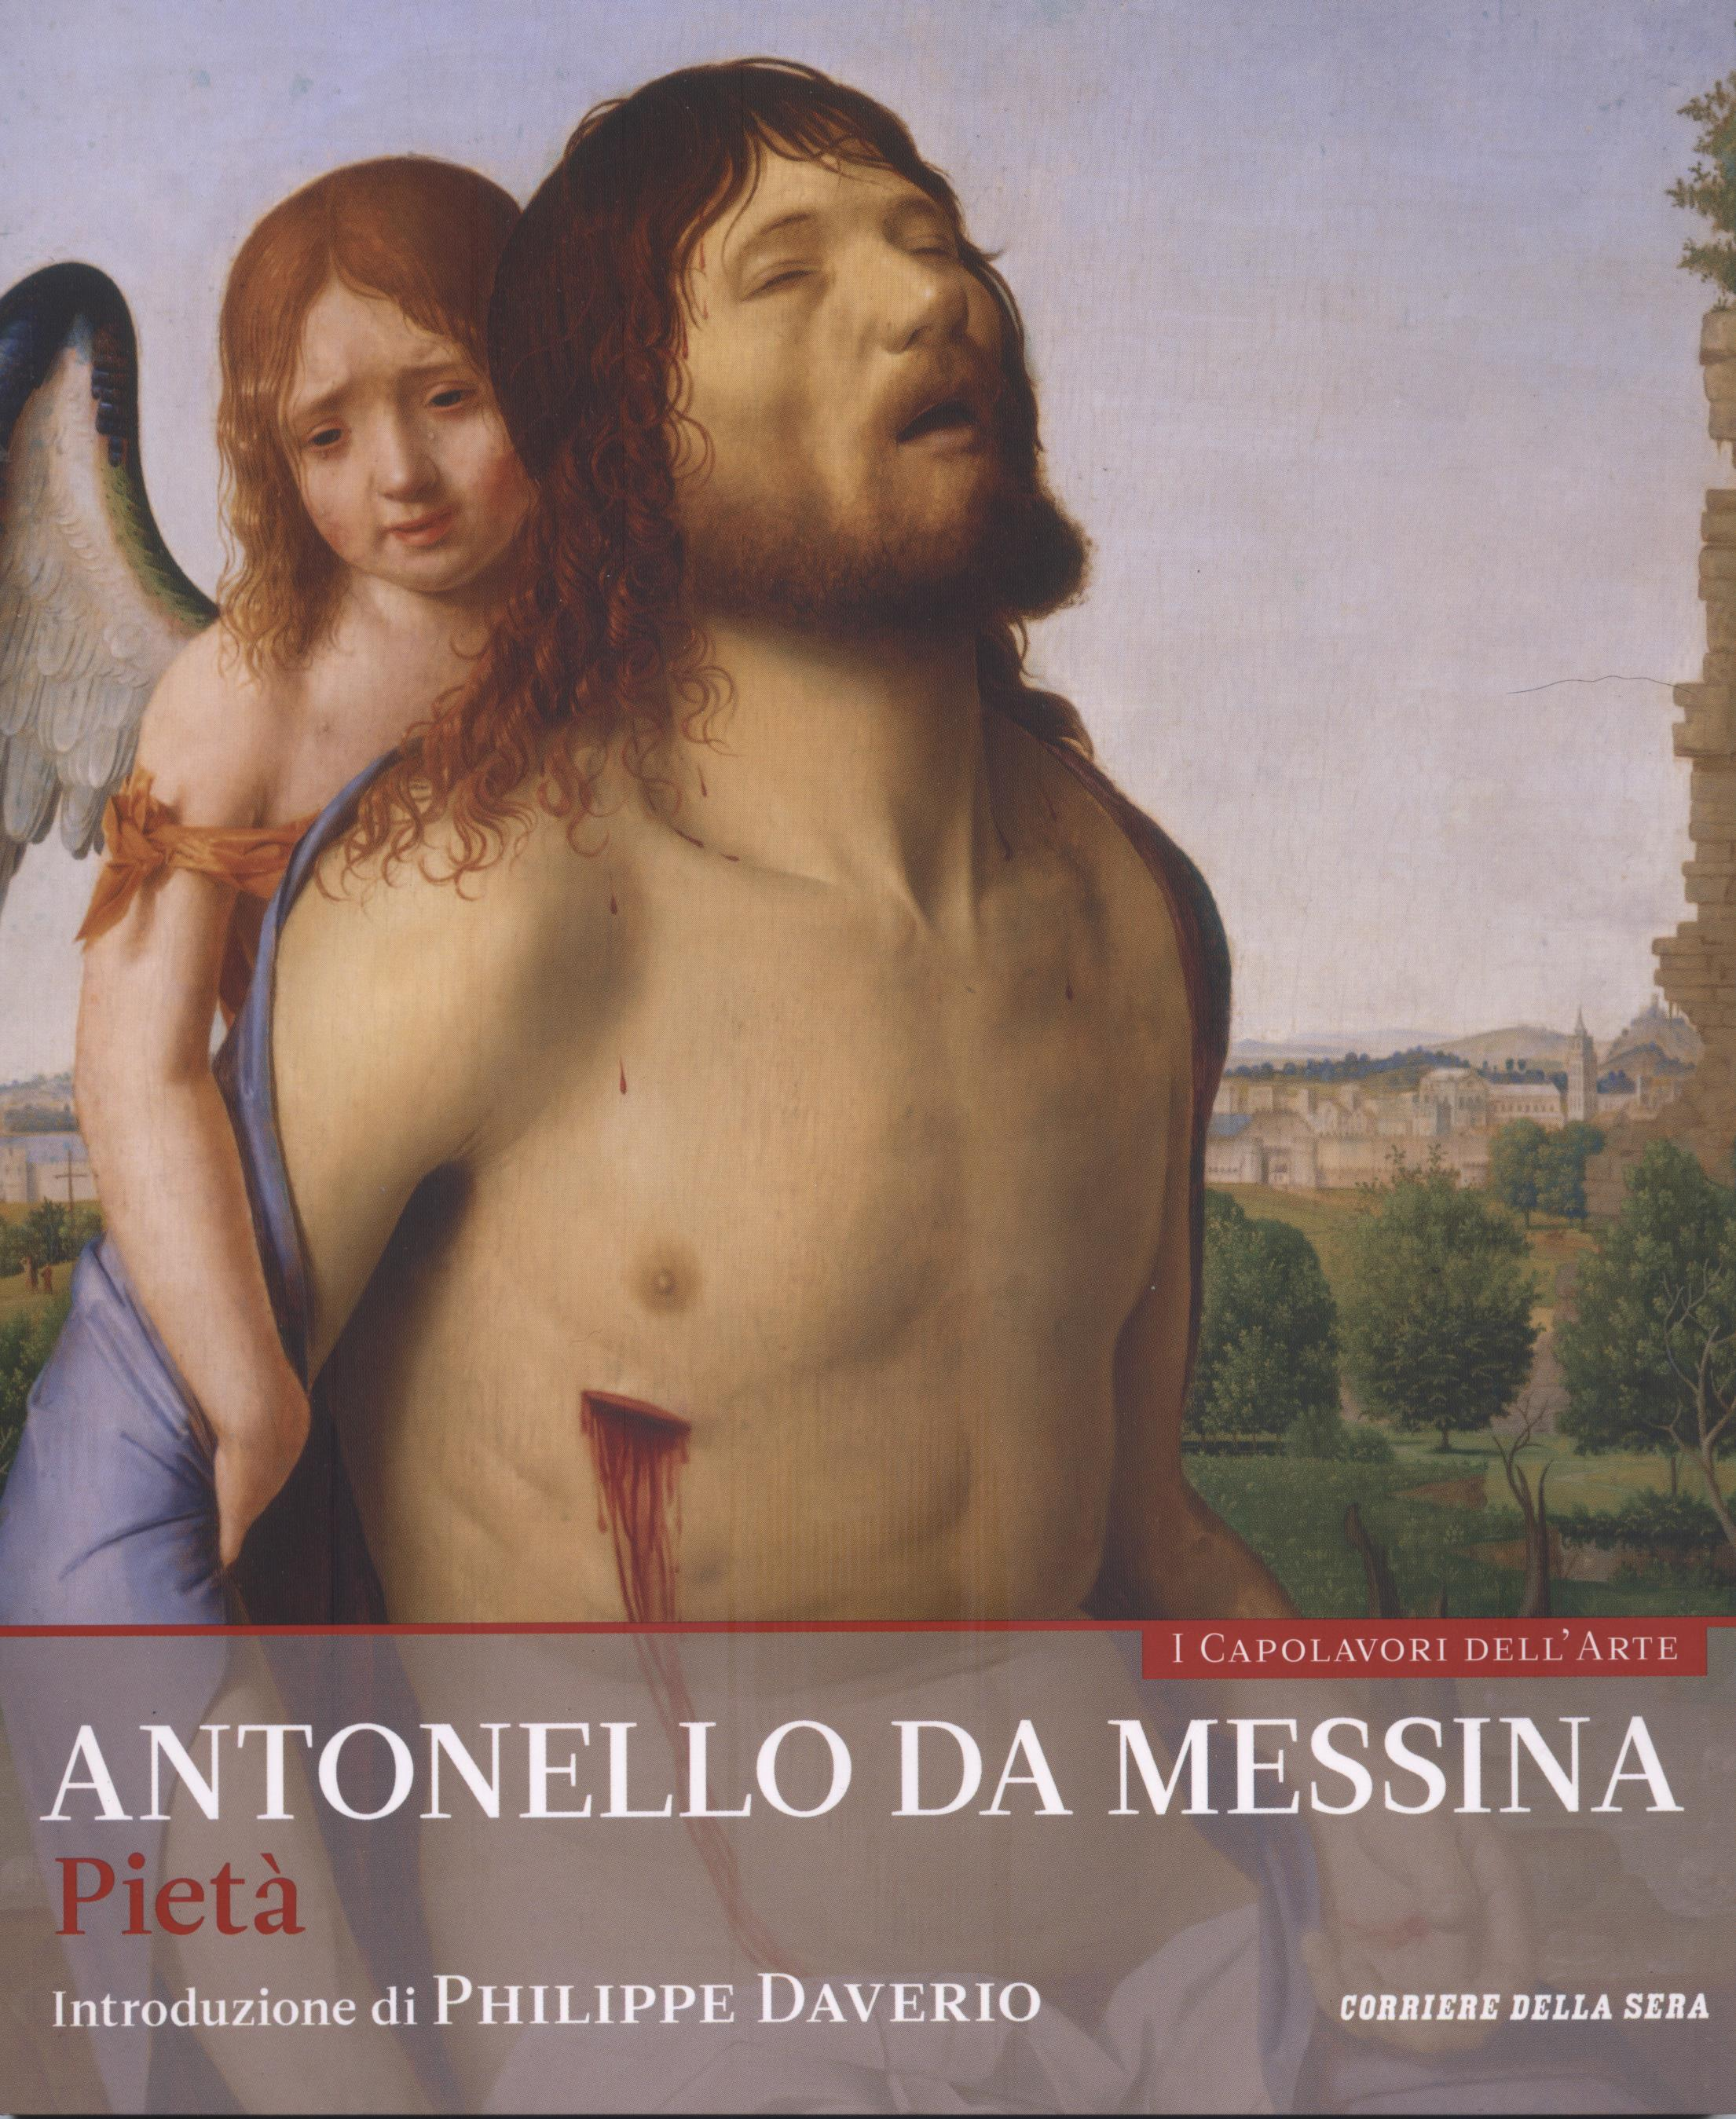 Antonello Da Messina - Pietà